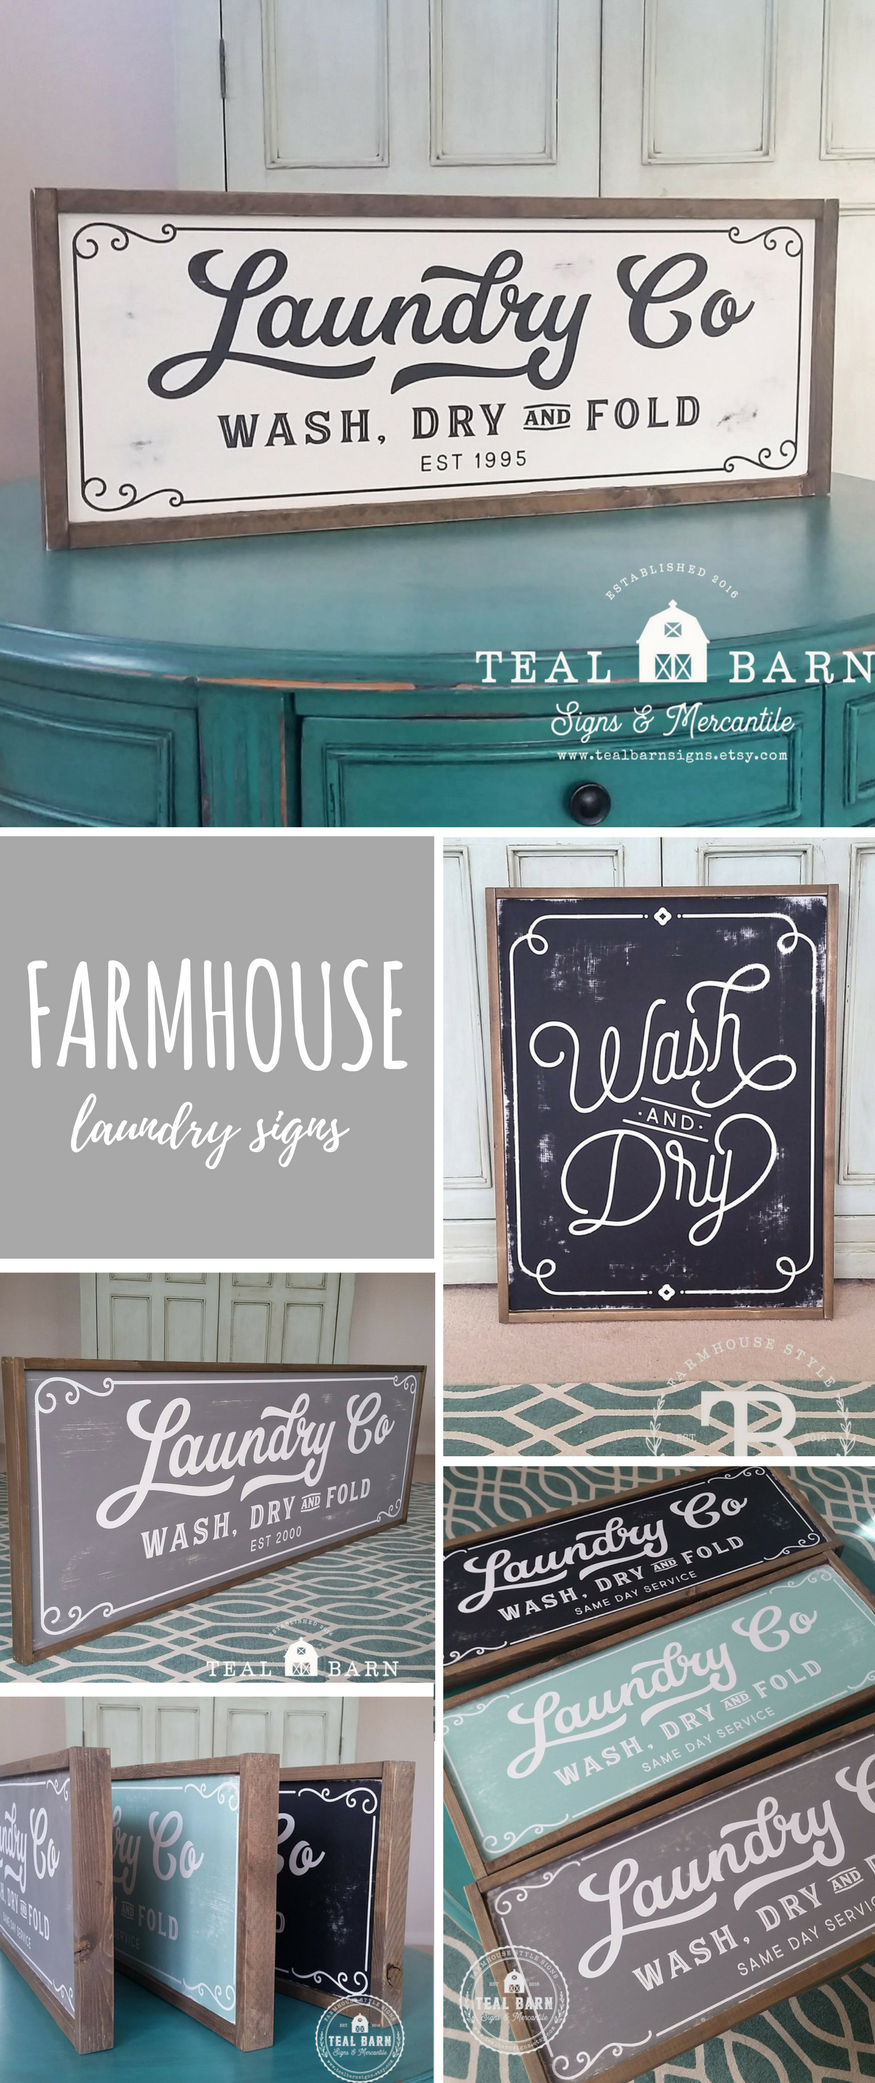 Adorable Farmhouse Laundry Signs On Etsy Love The Chalkboard